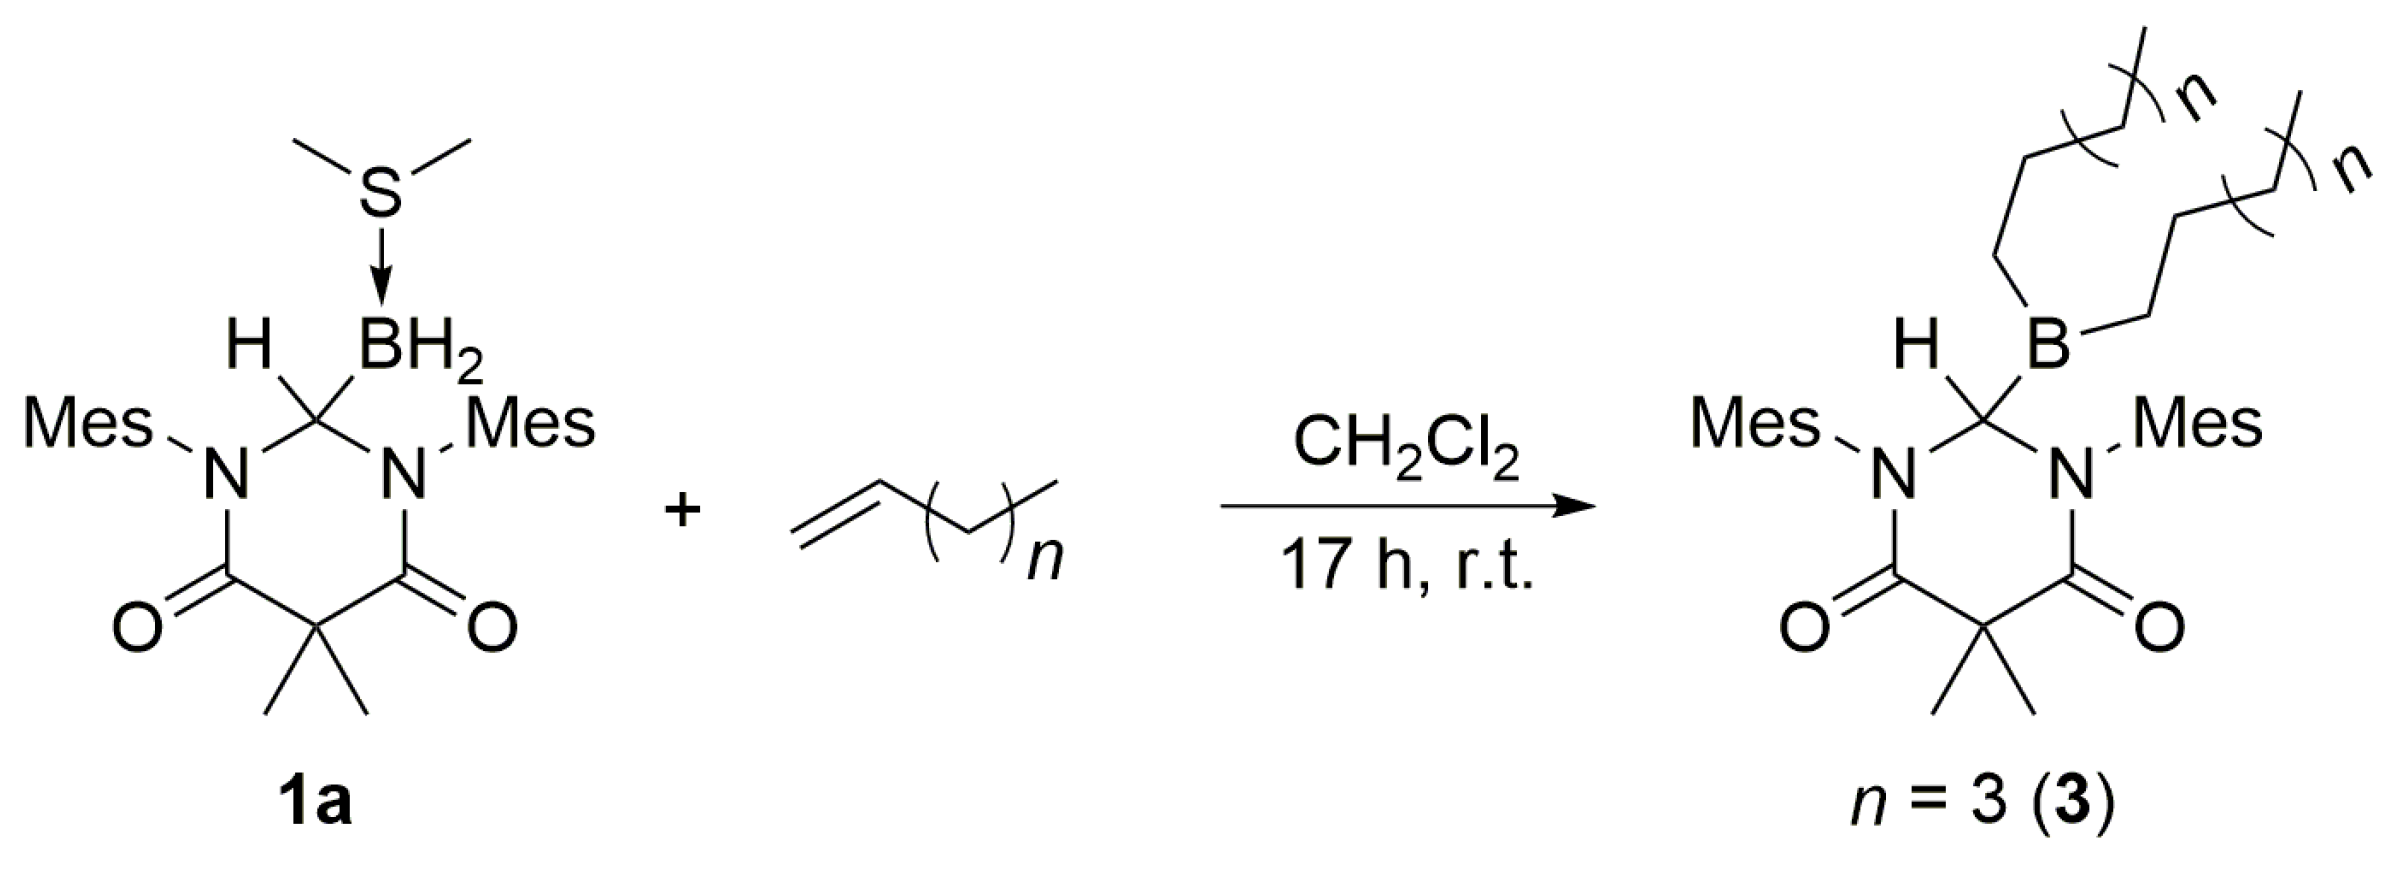 Catalysts 06 00141 sch003